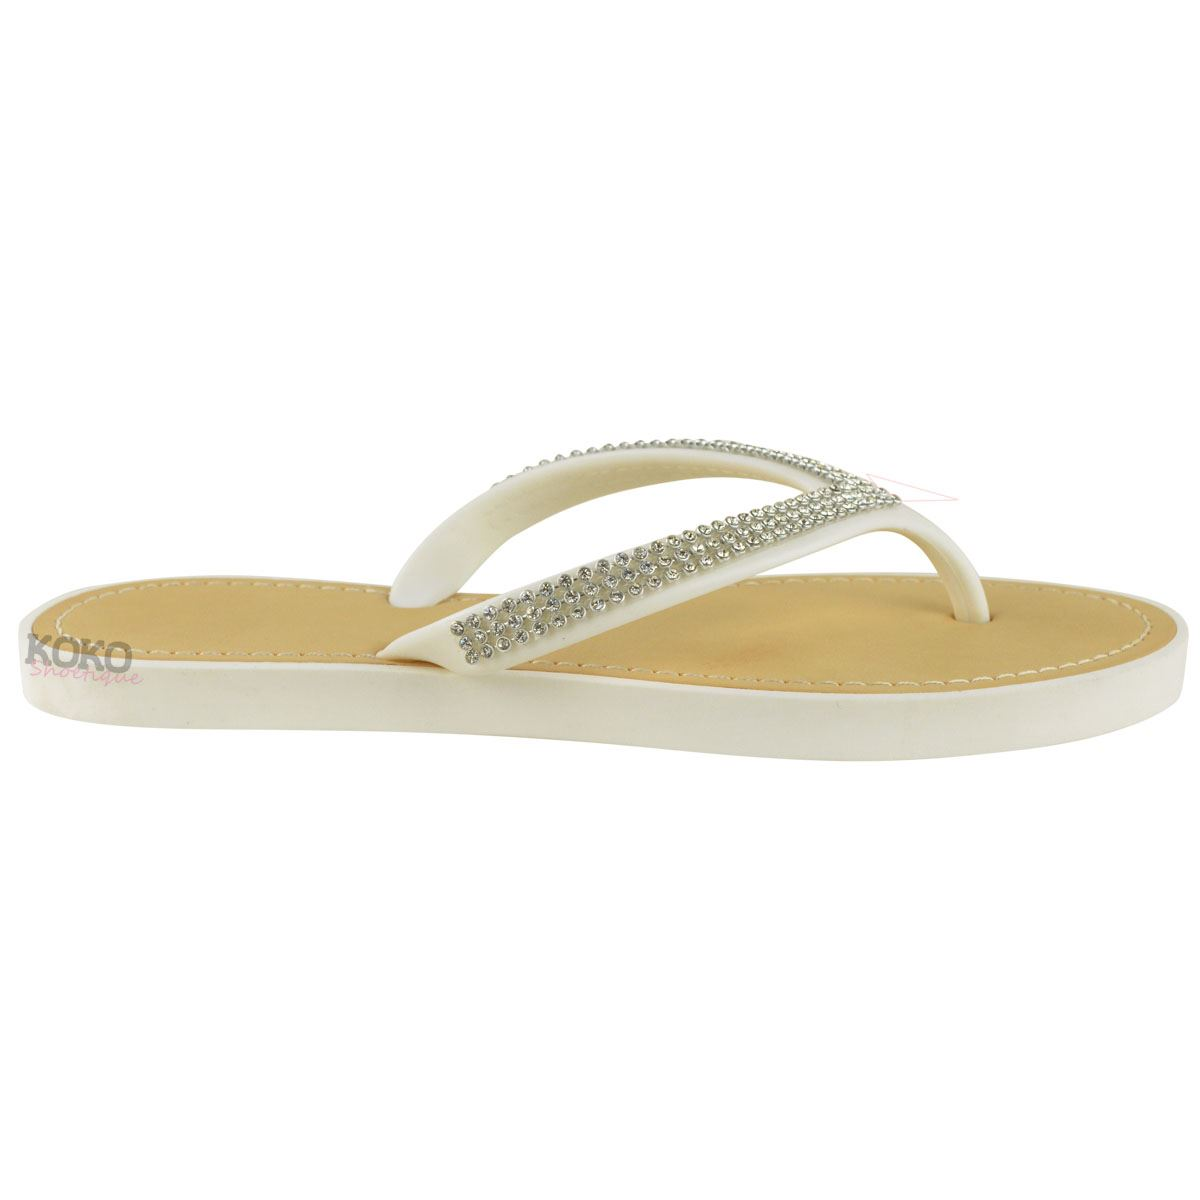 NEW-JELLY-SANDALS-WOMENS-LADIES-DIAMANTE-SUMMER-HOLIDAY-COMFORTS-FLIP-FLOPS-SIZE thumbnail 34